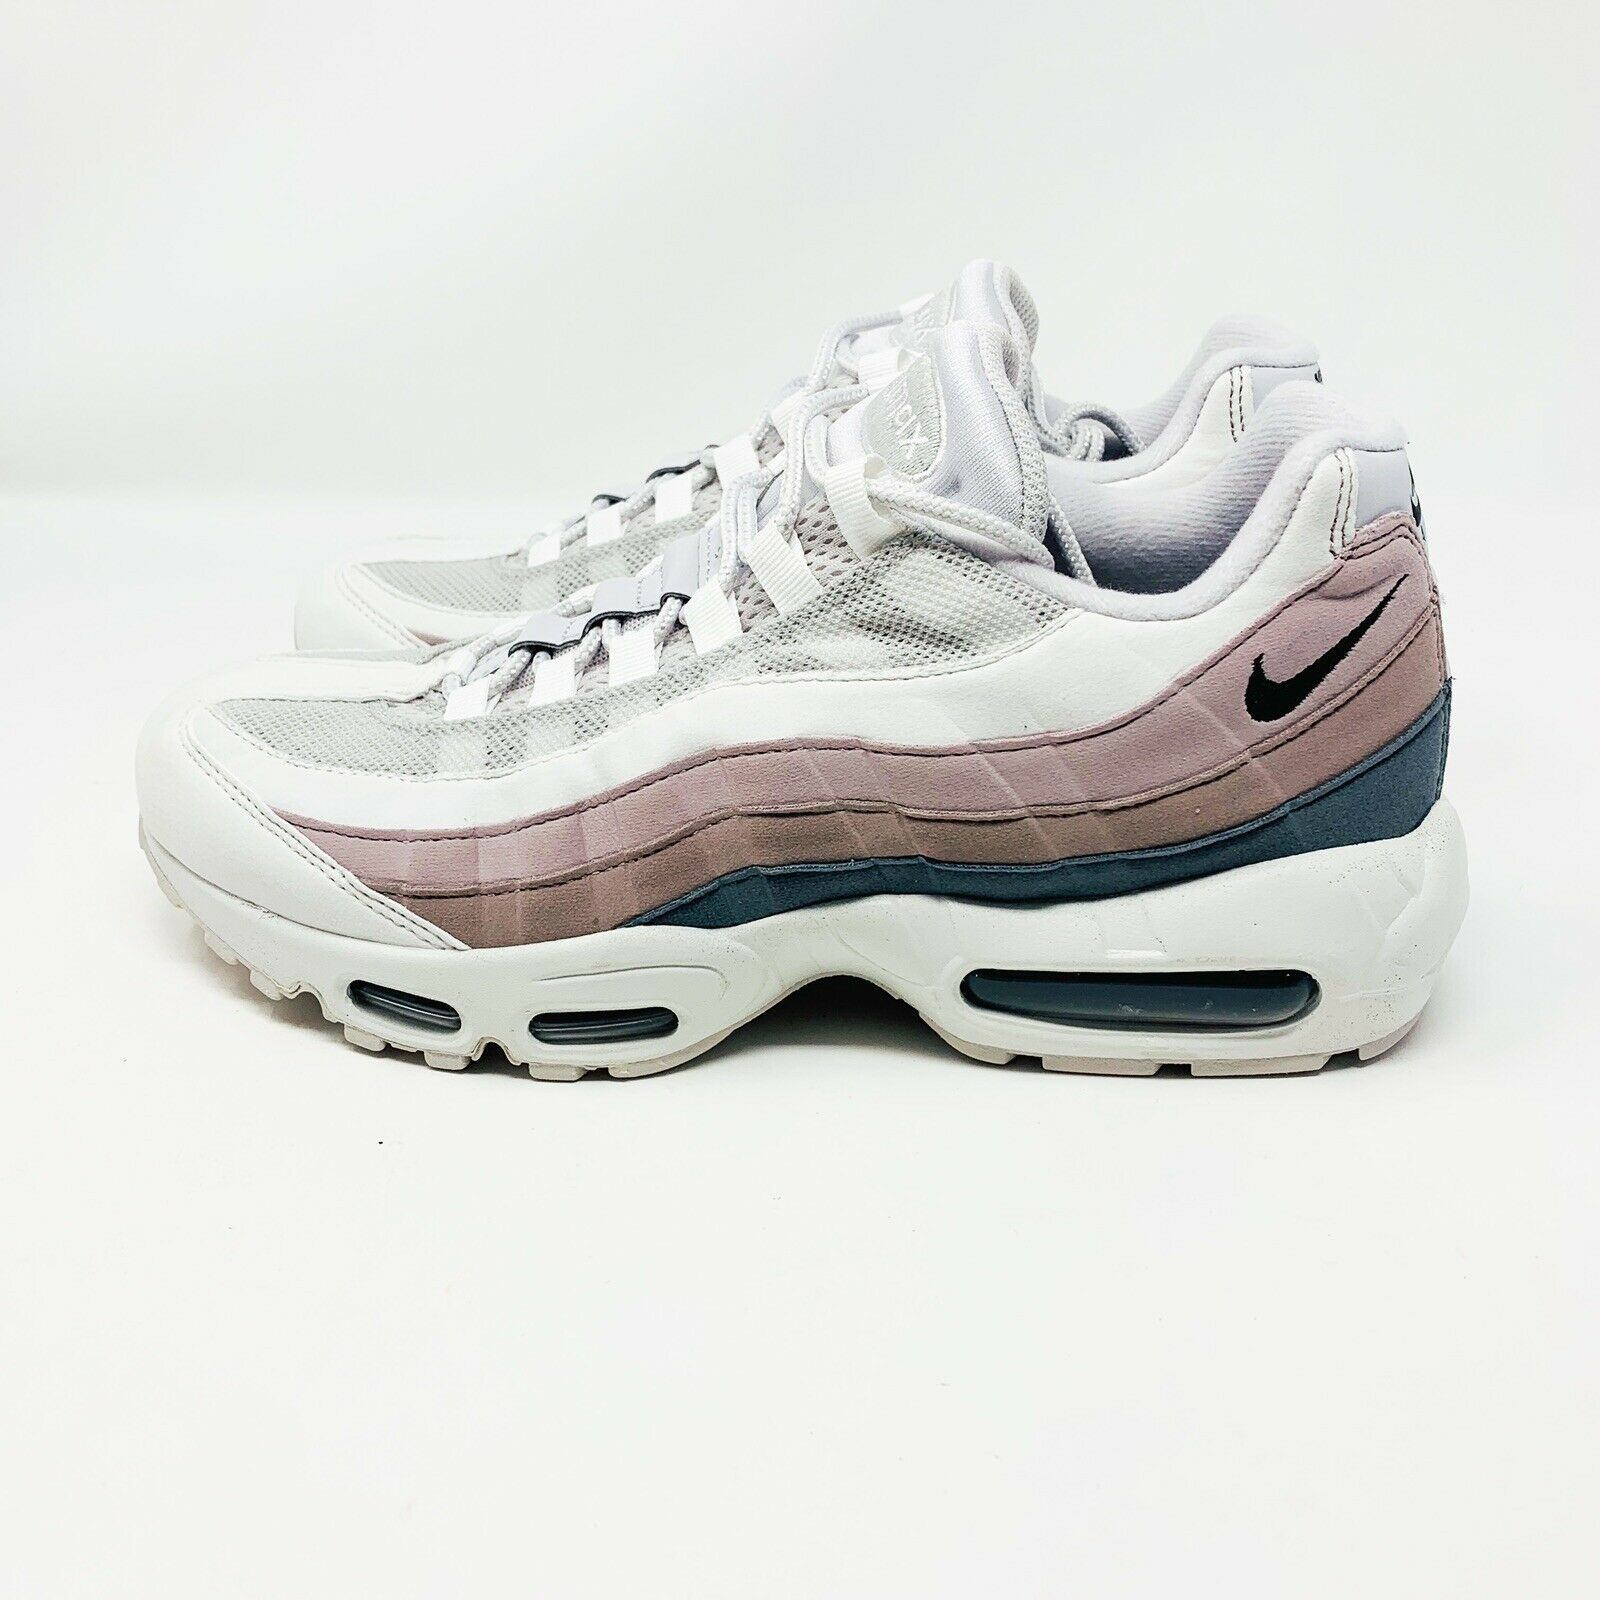 NIKE AIR MAX 95 VAST OIL GREY [307960 022] Size 9 Men's